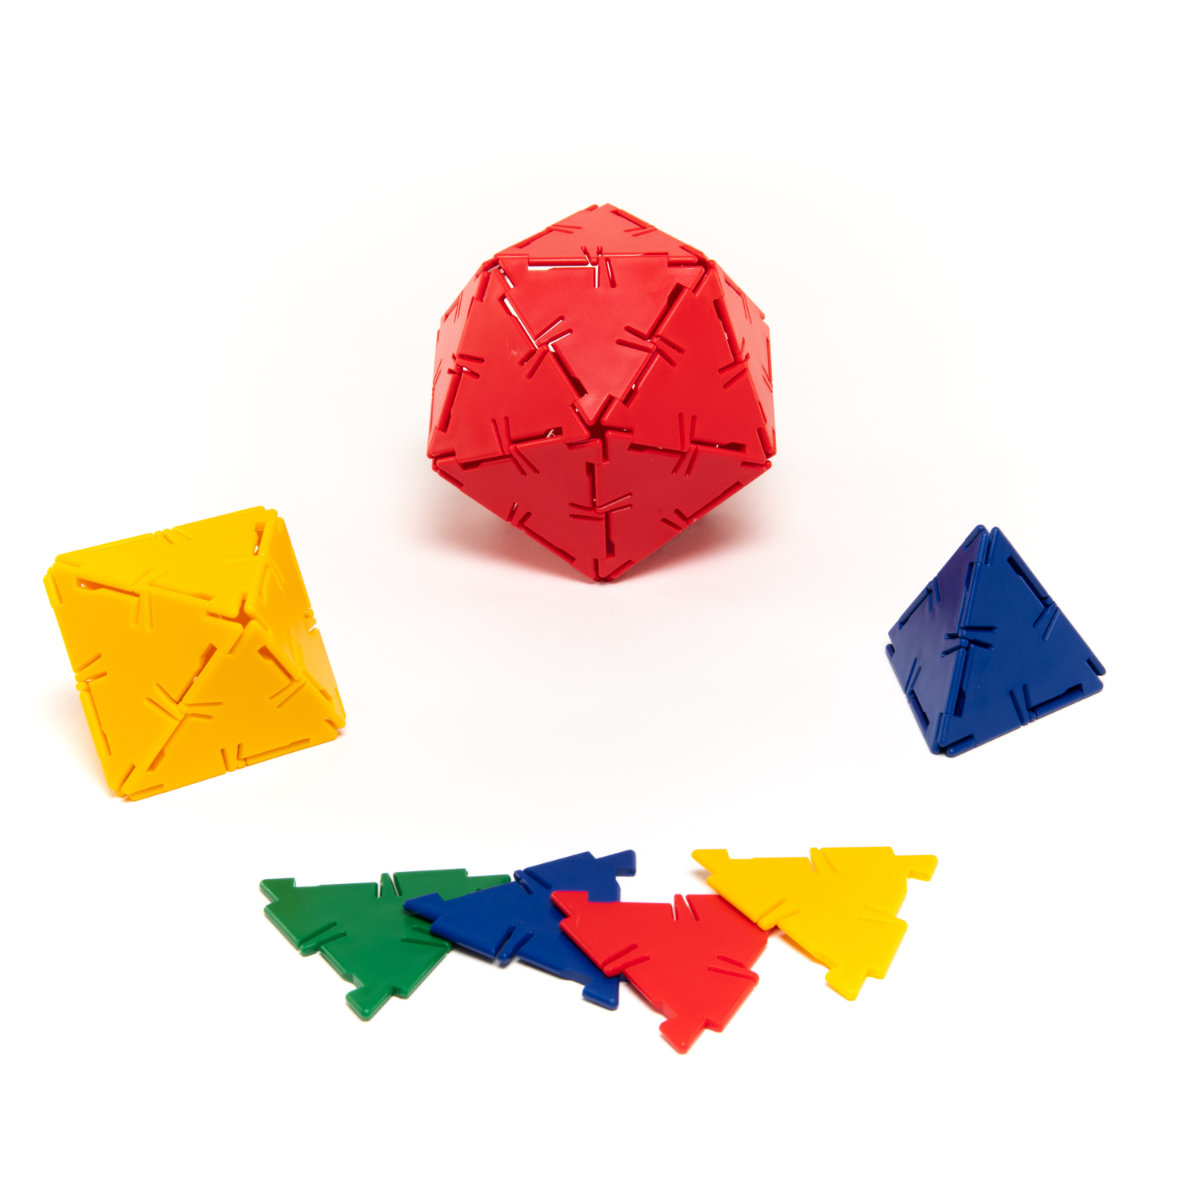 Polydron 100 Equilateral Triangles